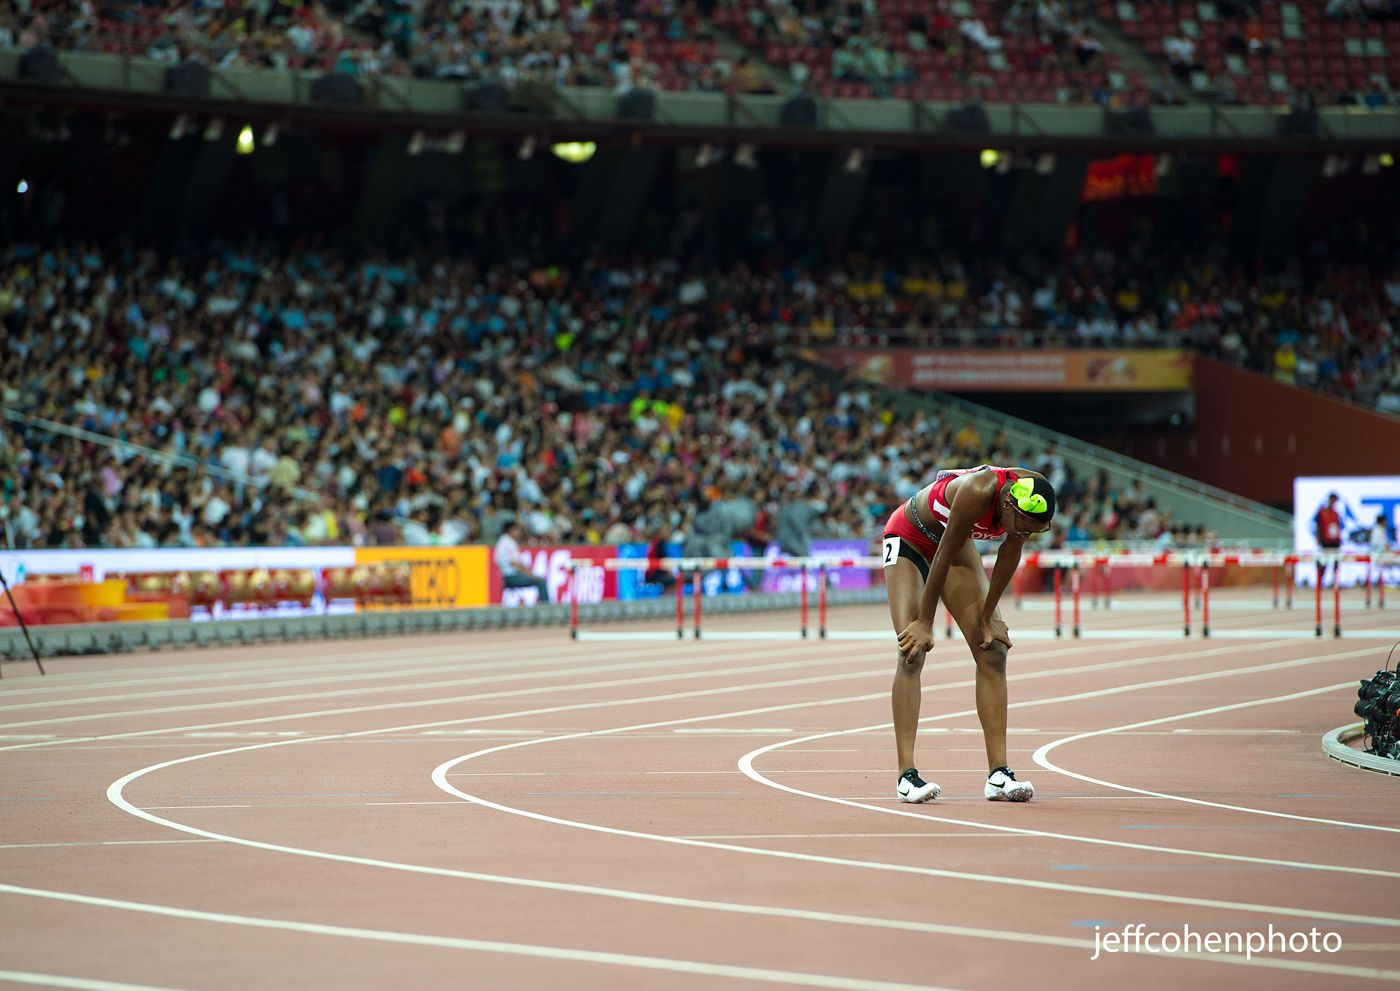 1beijing2015_night_3_little_400hw_jeff_cohen_photo_13306_web.jpg